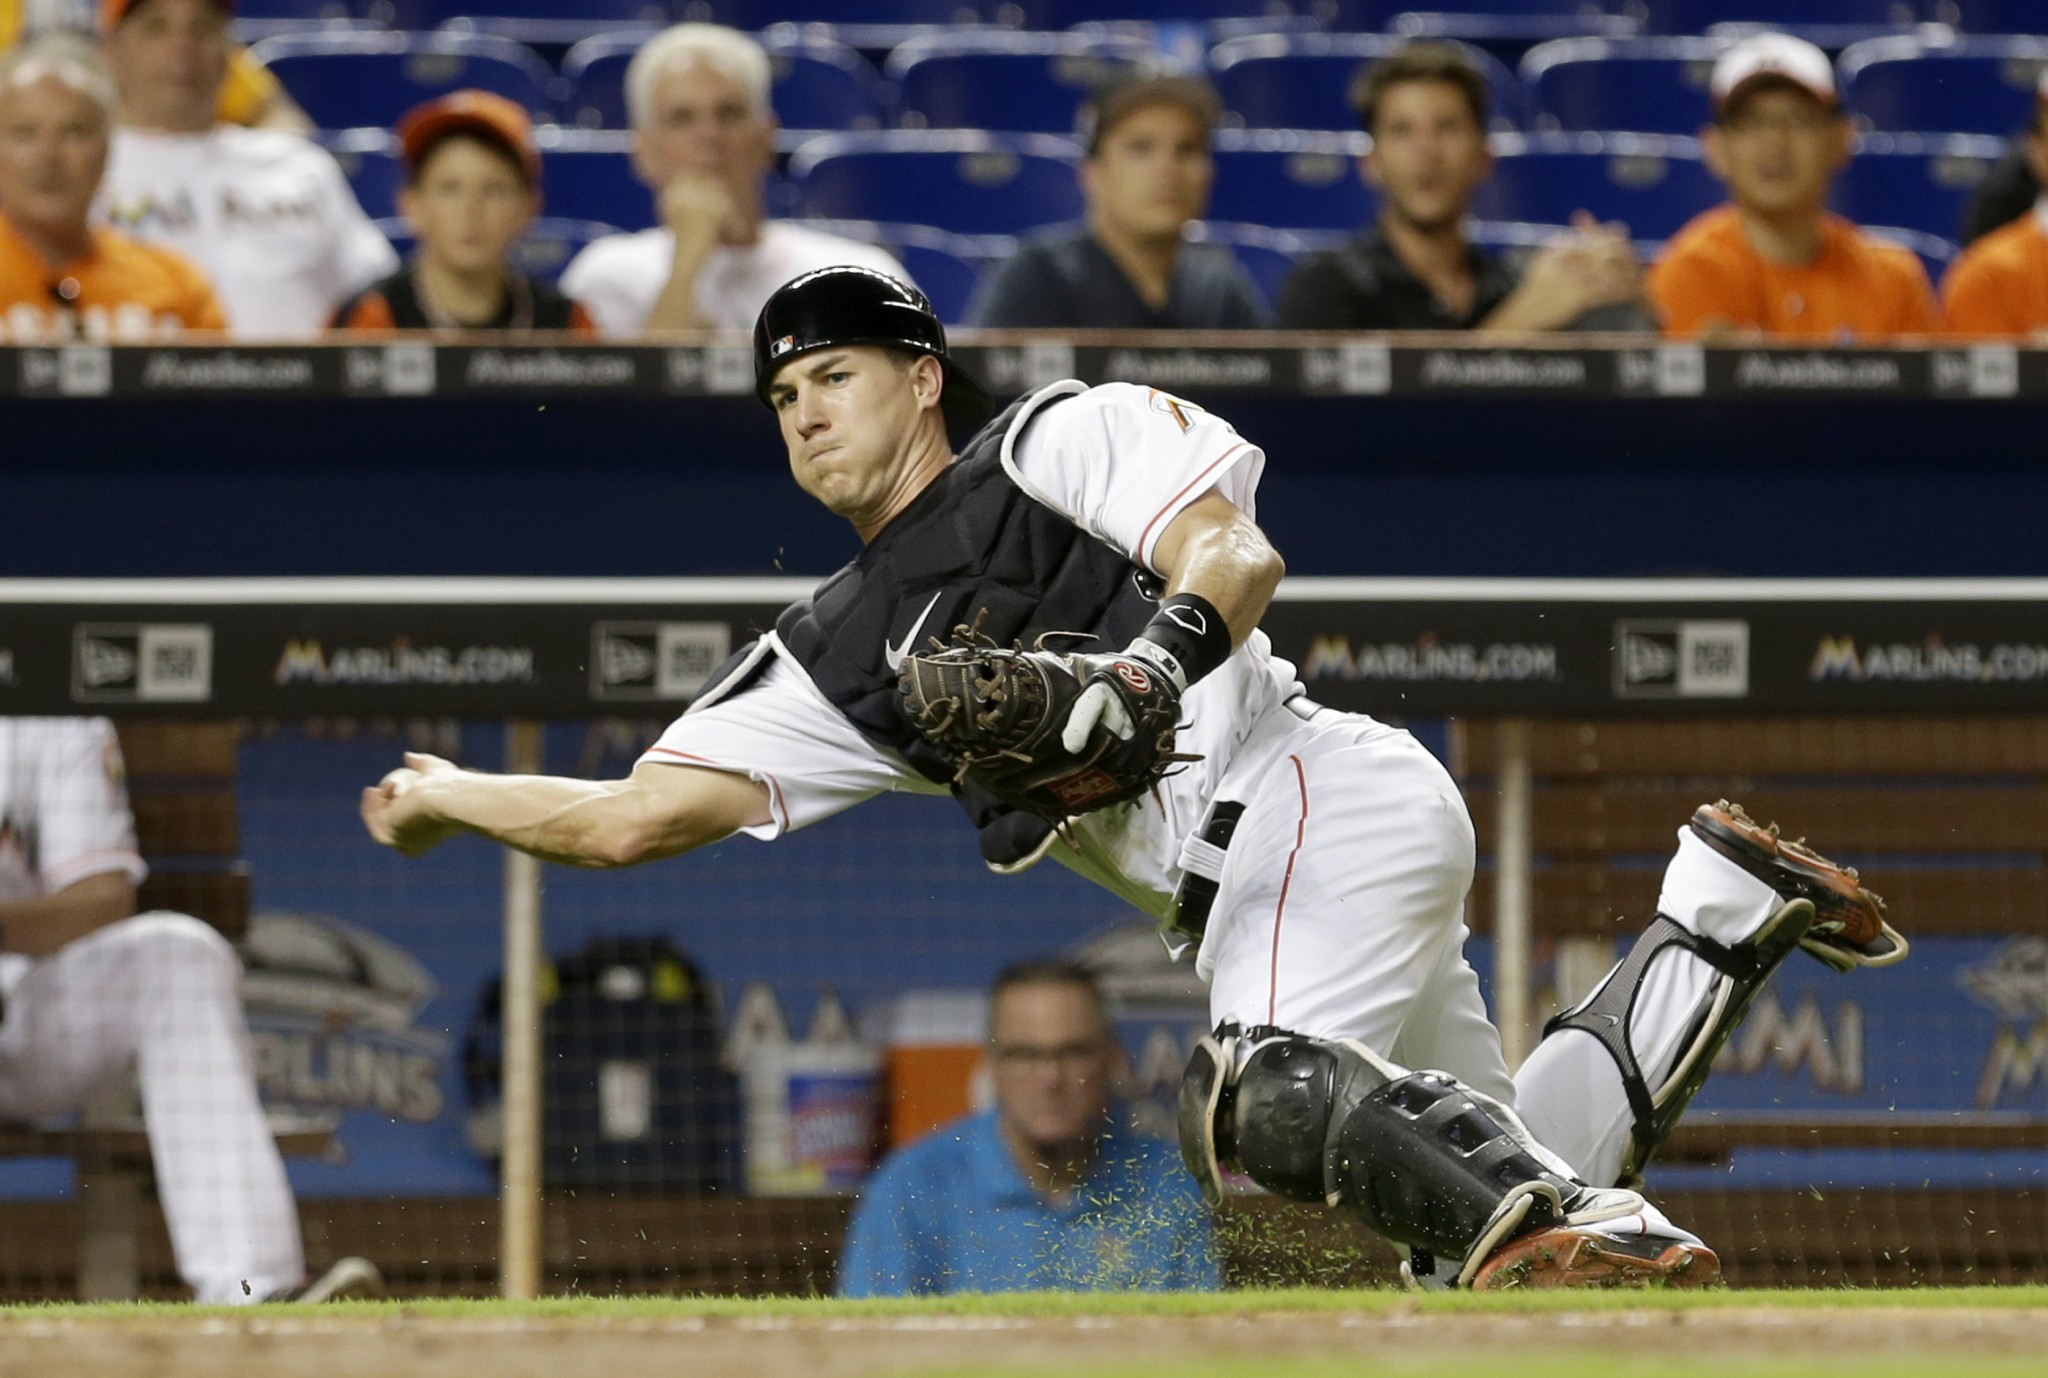 Game Over: The 2016 Miami Marlins